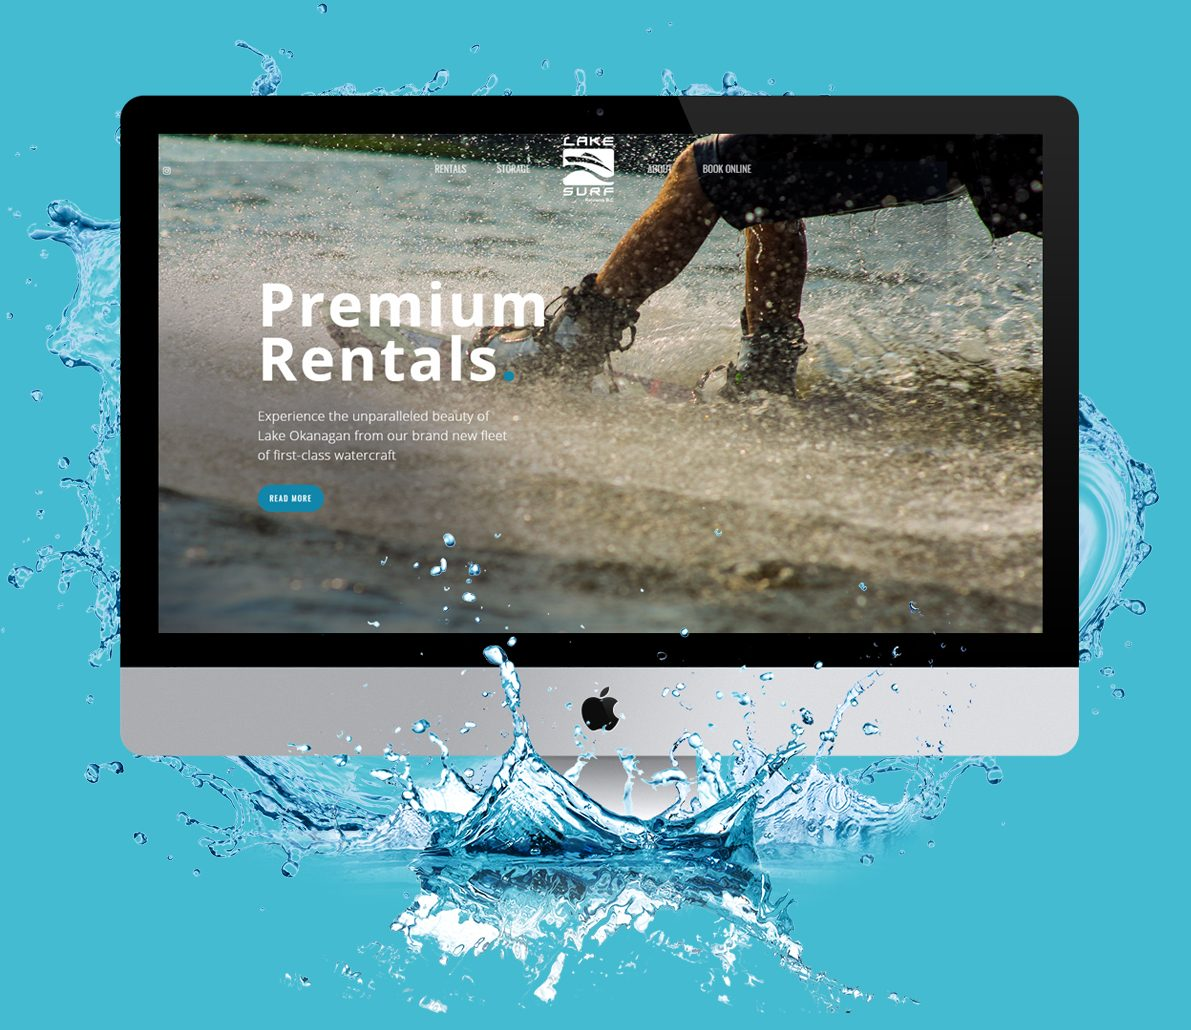 website design example for surf rental company